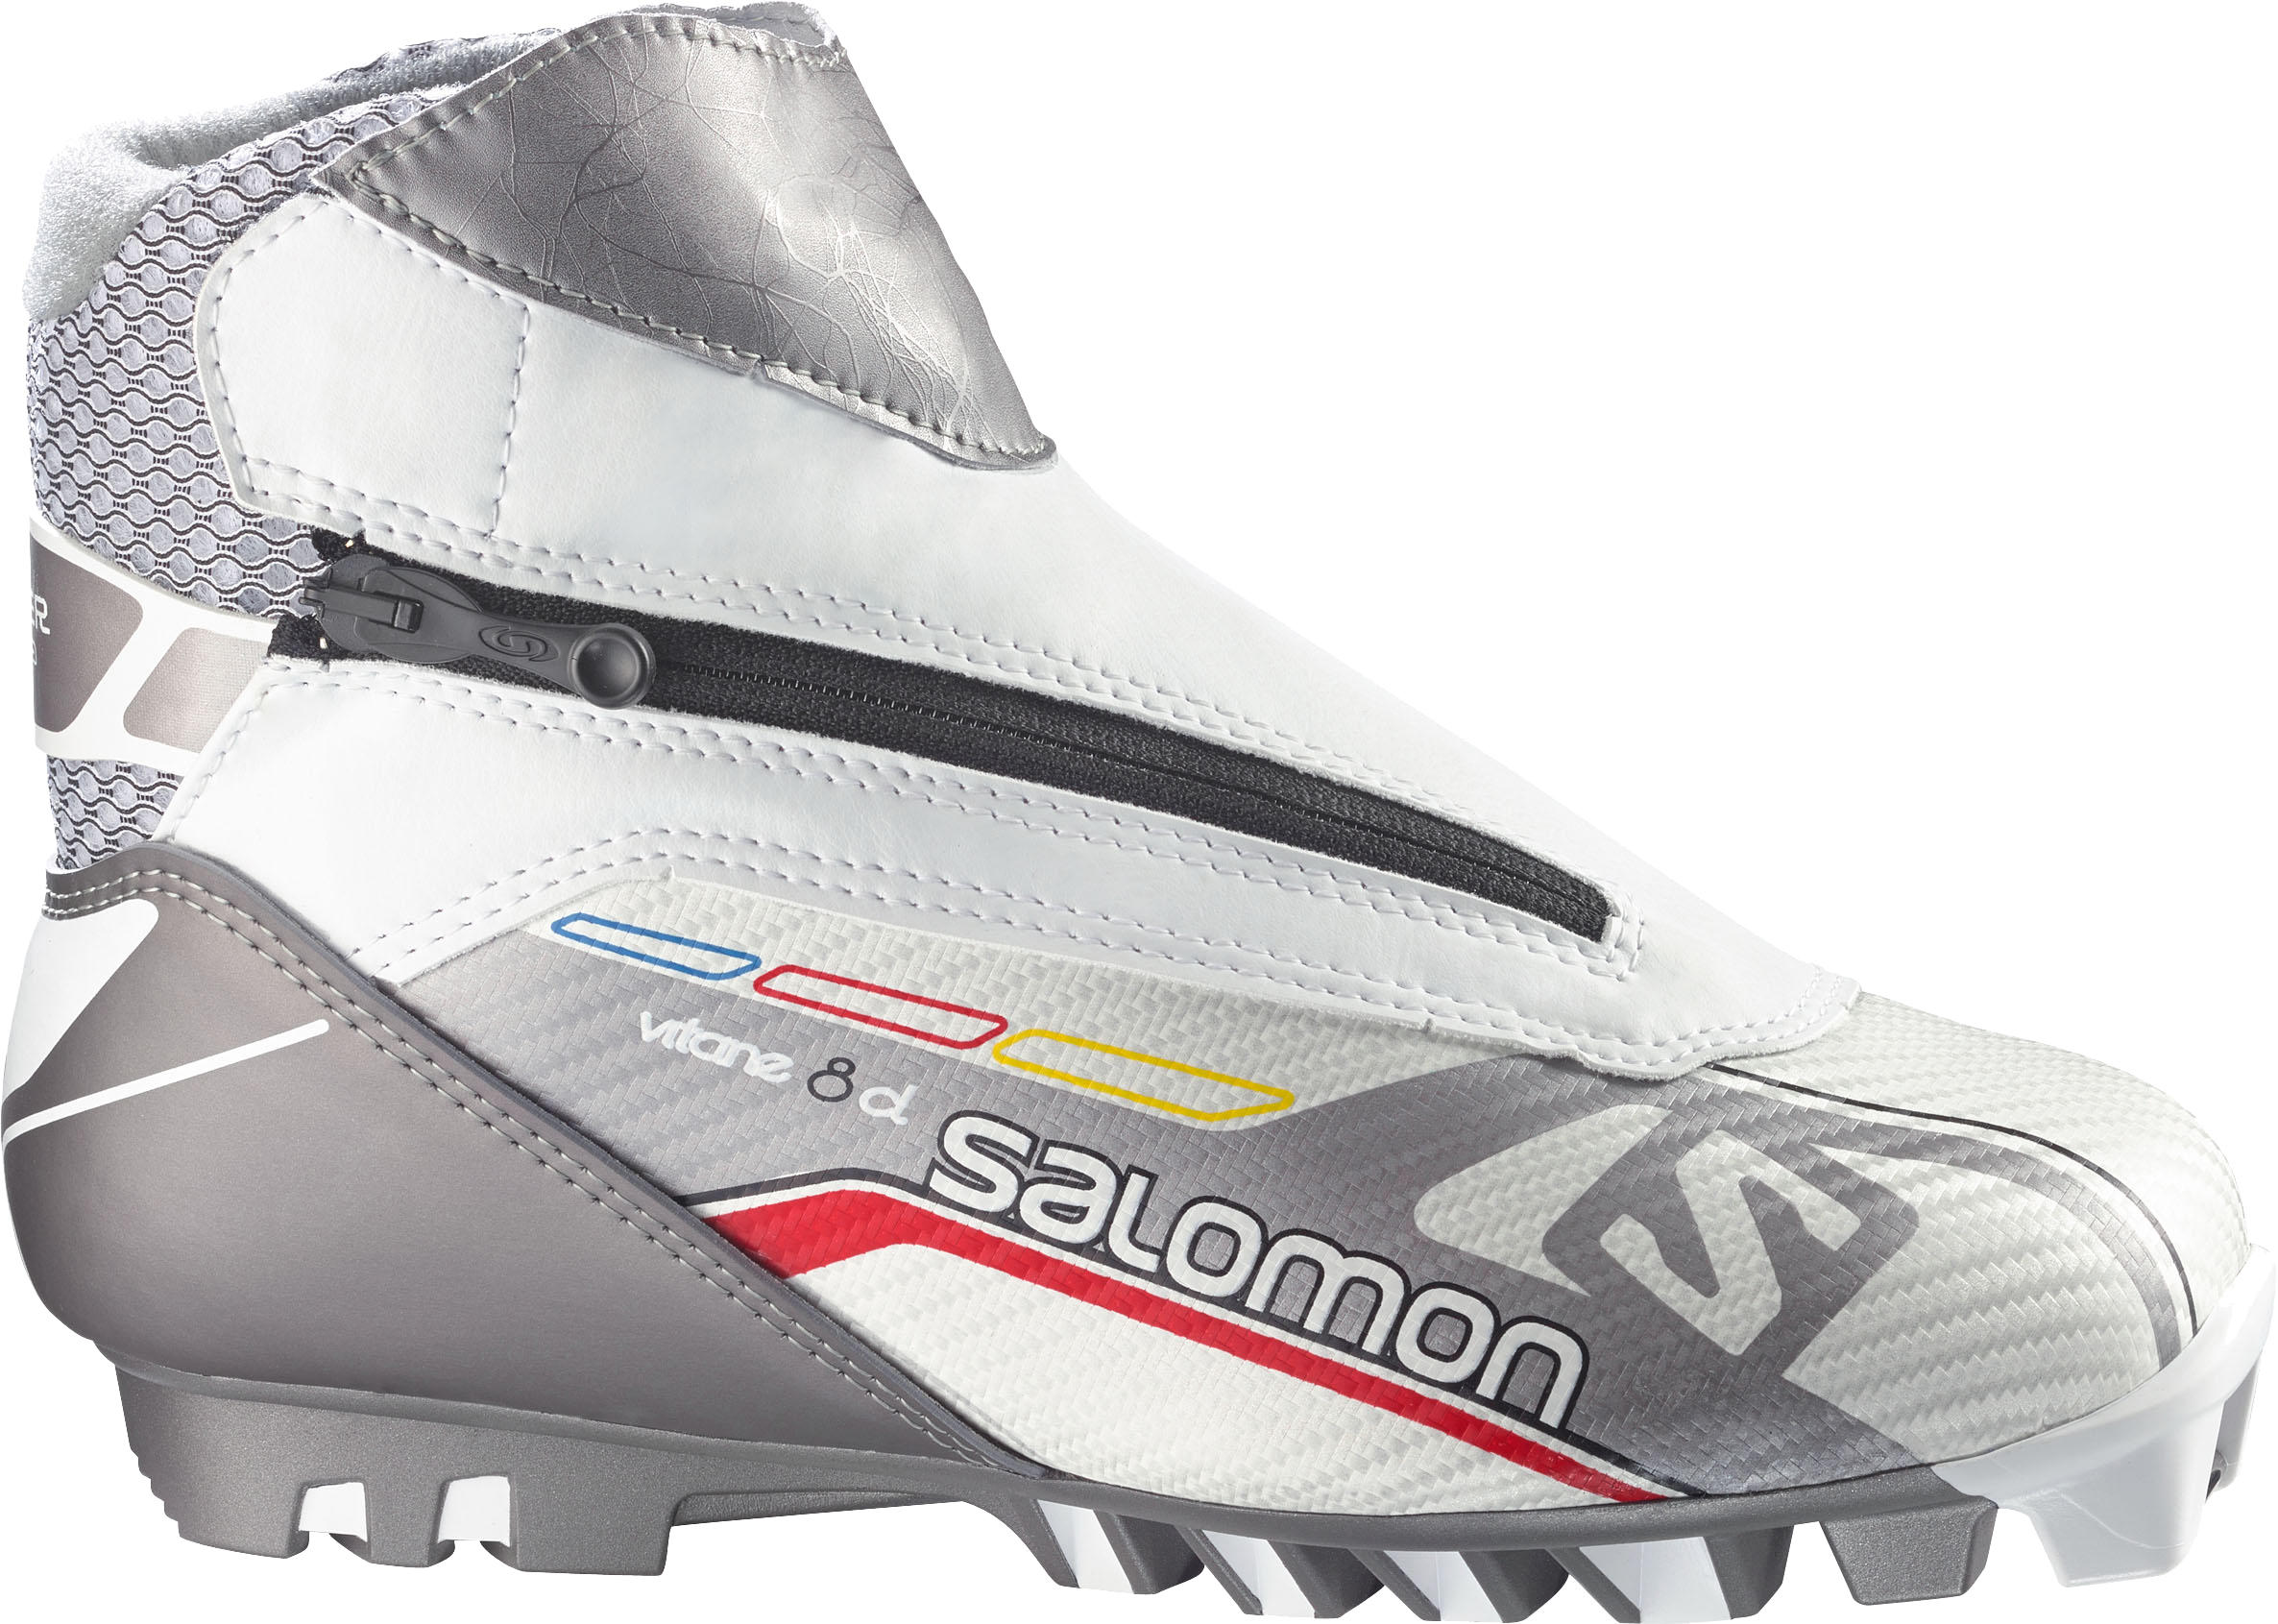 Product Review – Salomon Siam 7 Pilot (Classic Cross Country